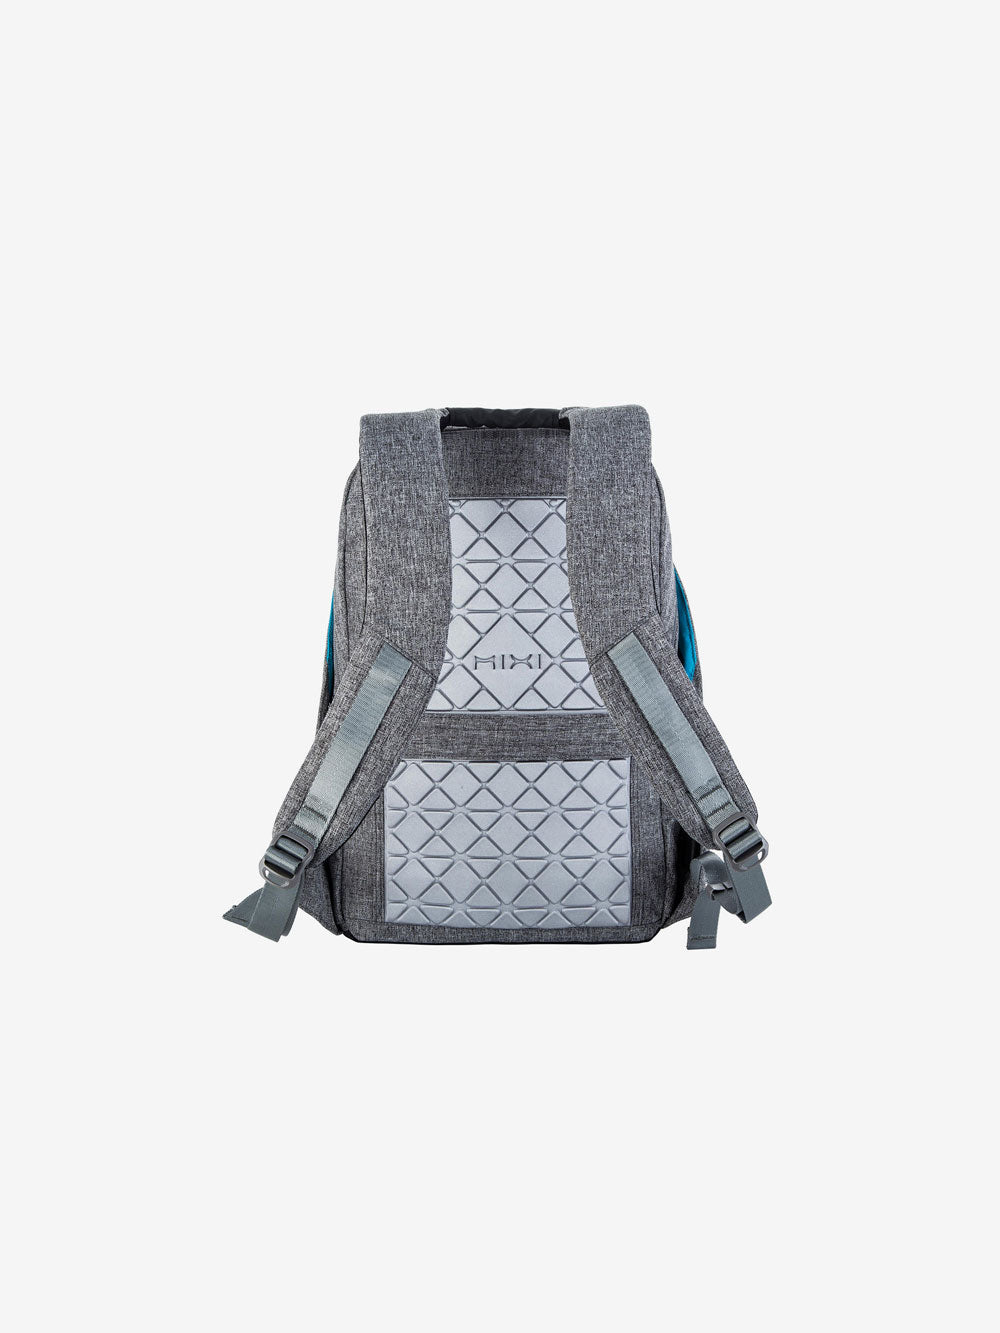 Daypack with Charger in Charcoal Grey